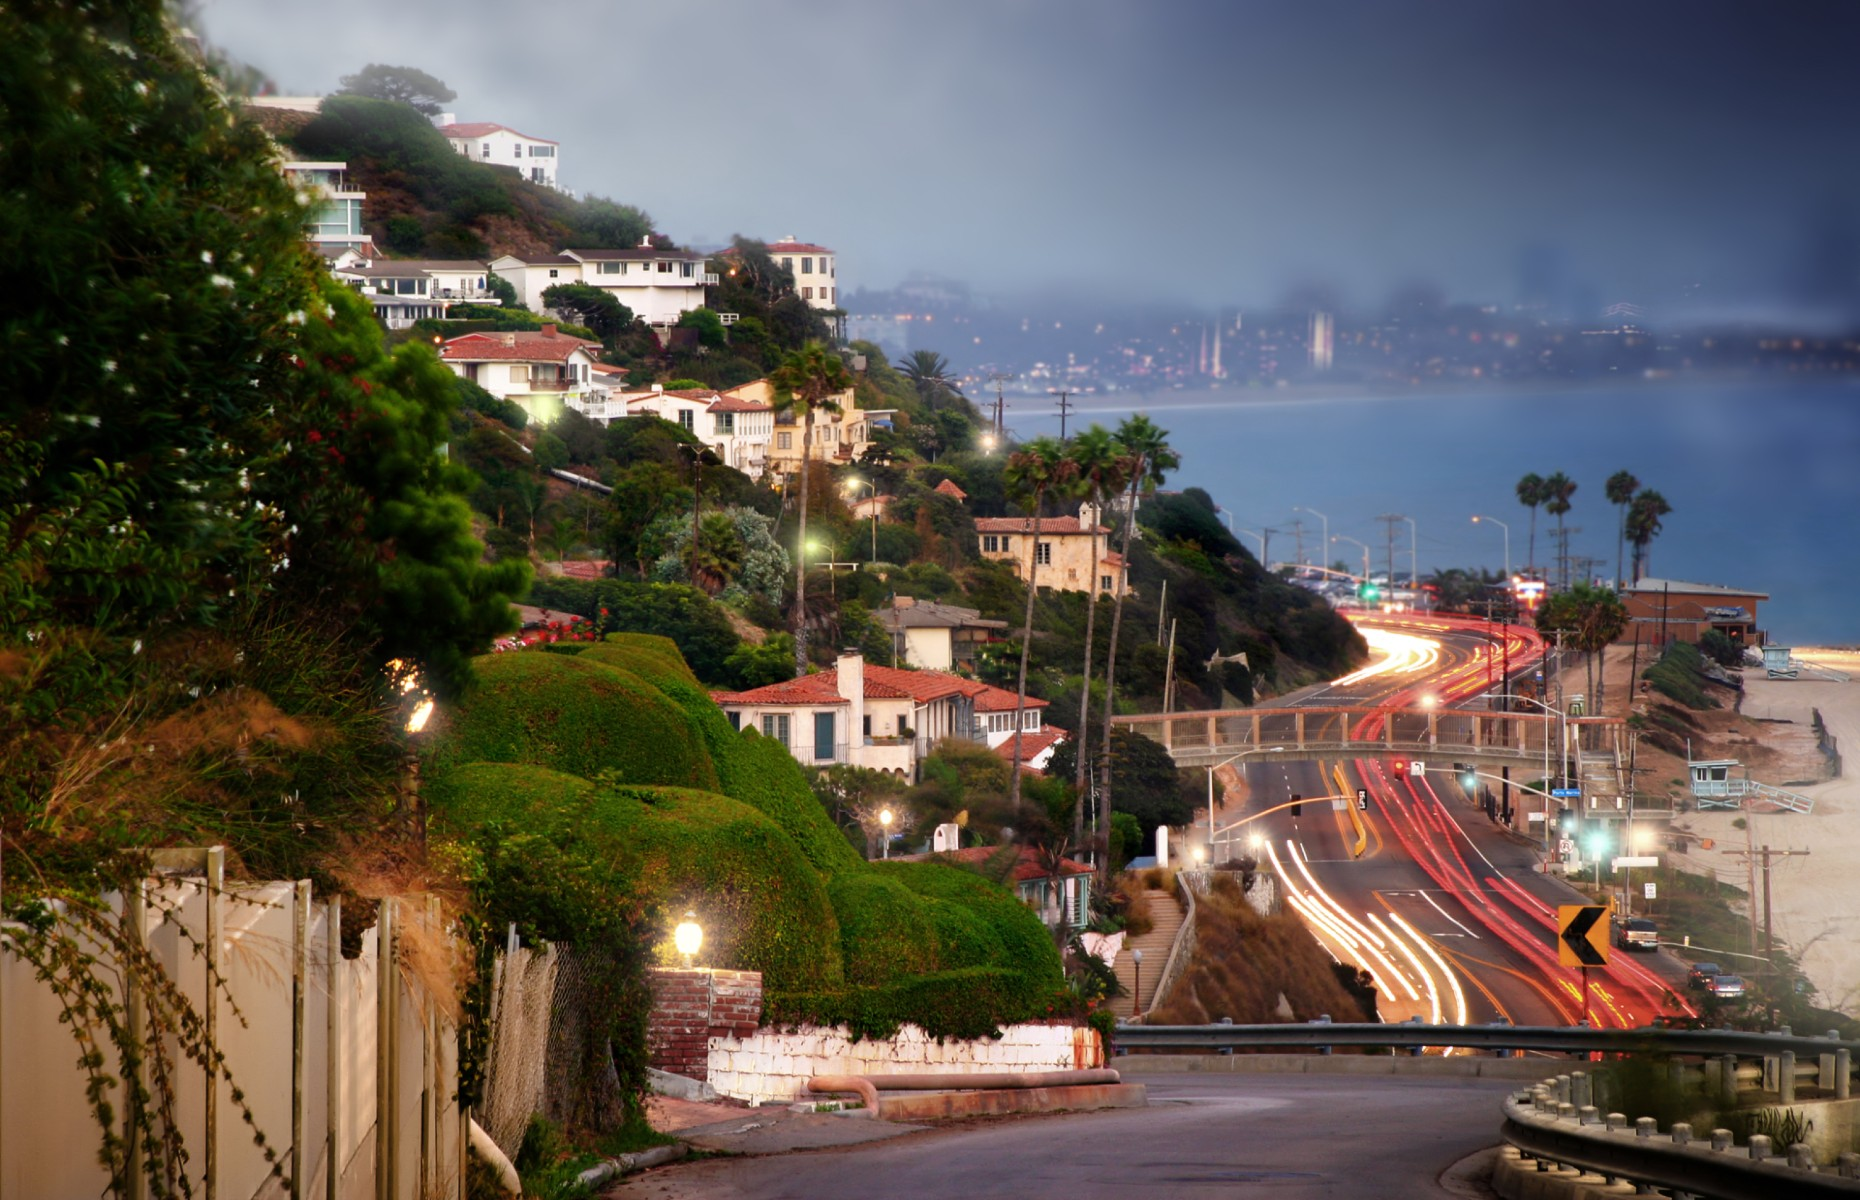 Urban stretch of the Pacific Coast in California (Image: CURAphotography/Shutterstock)